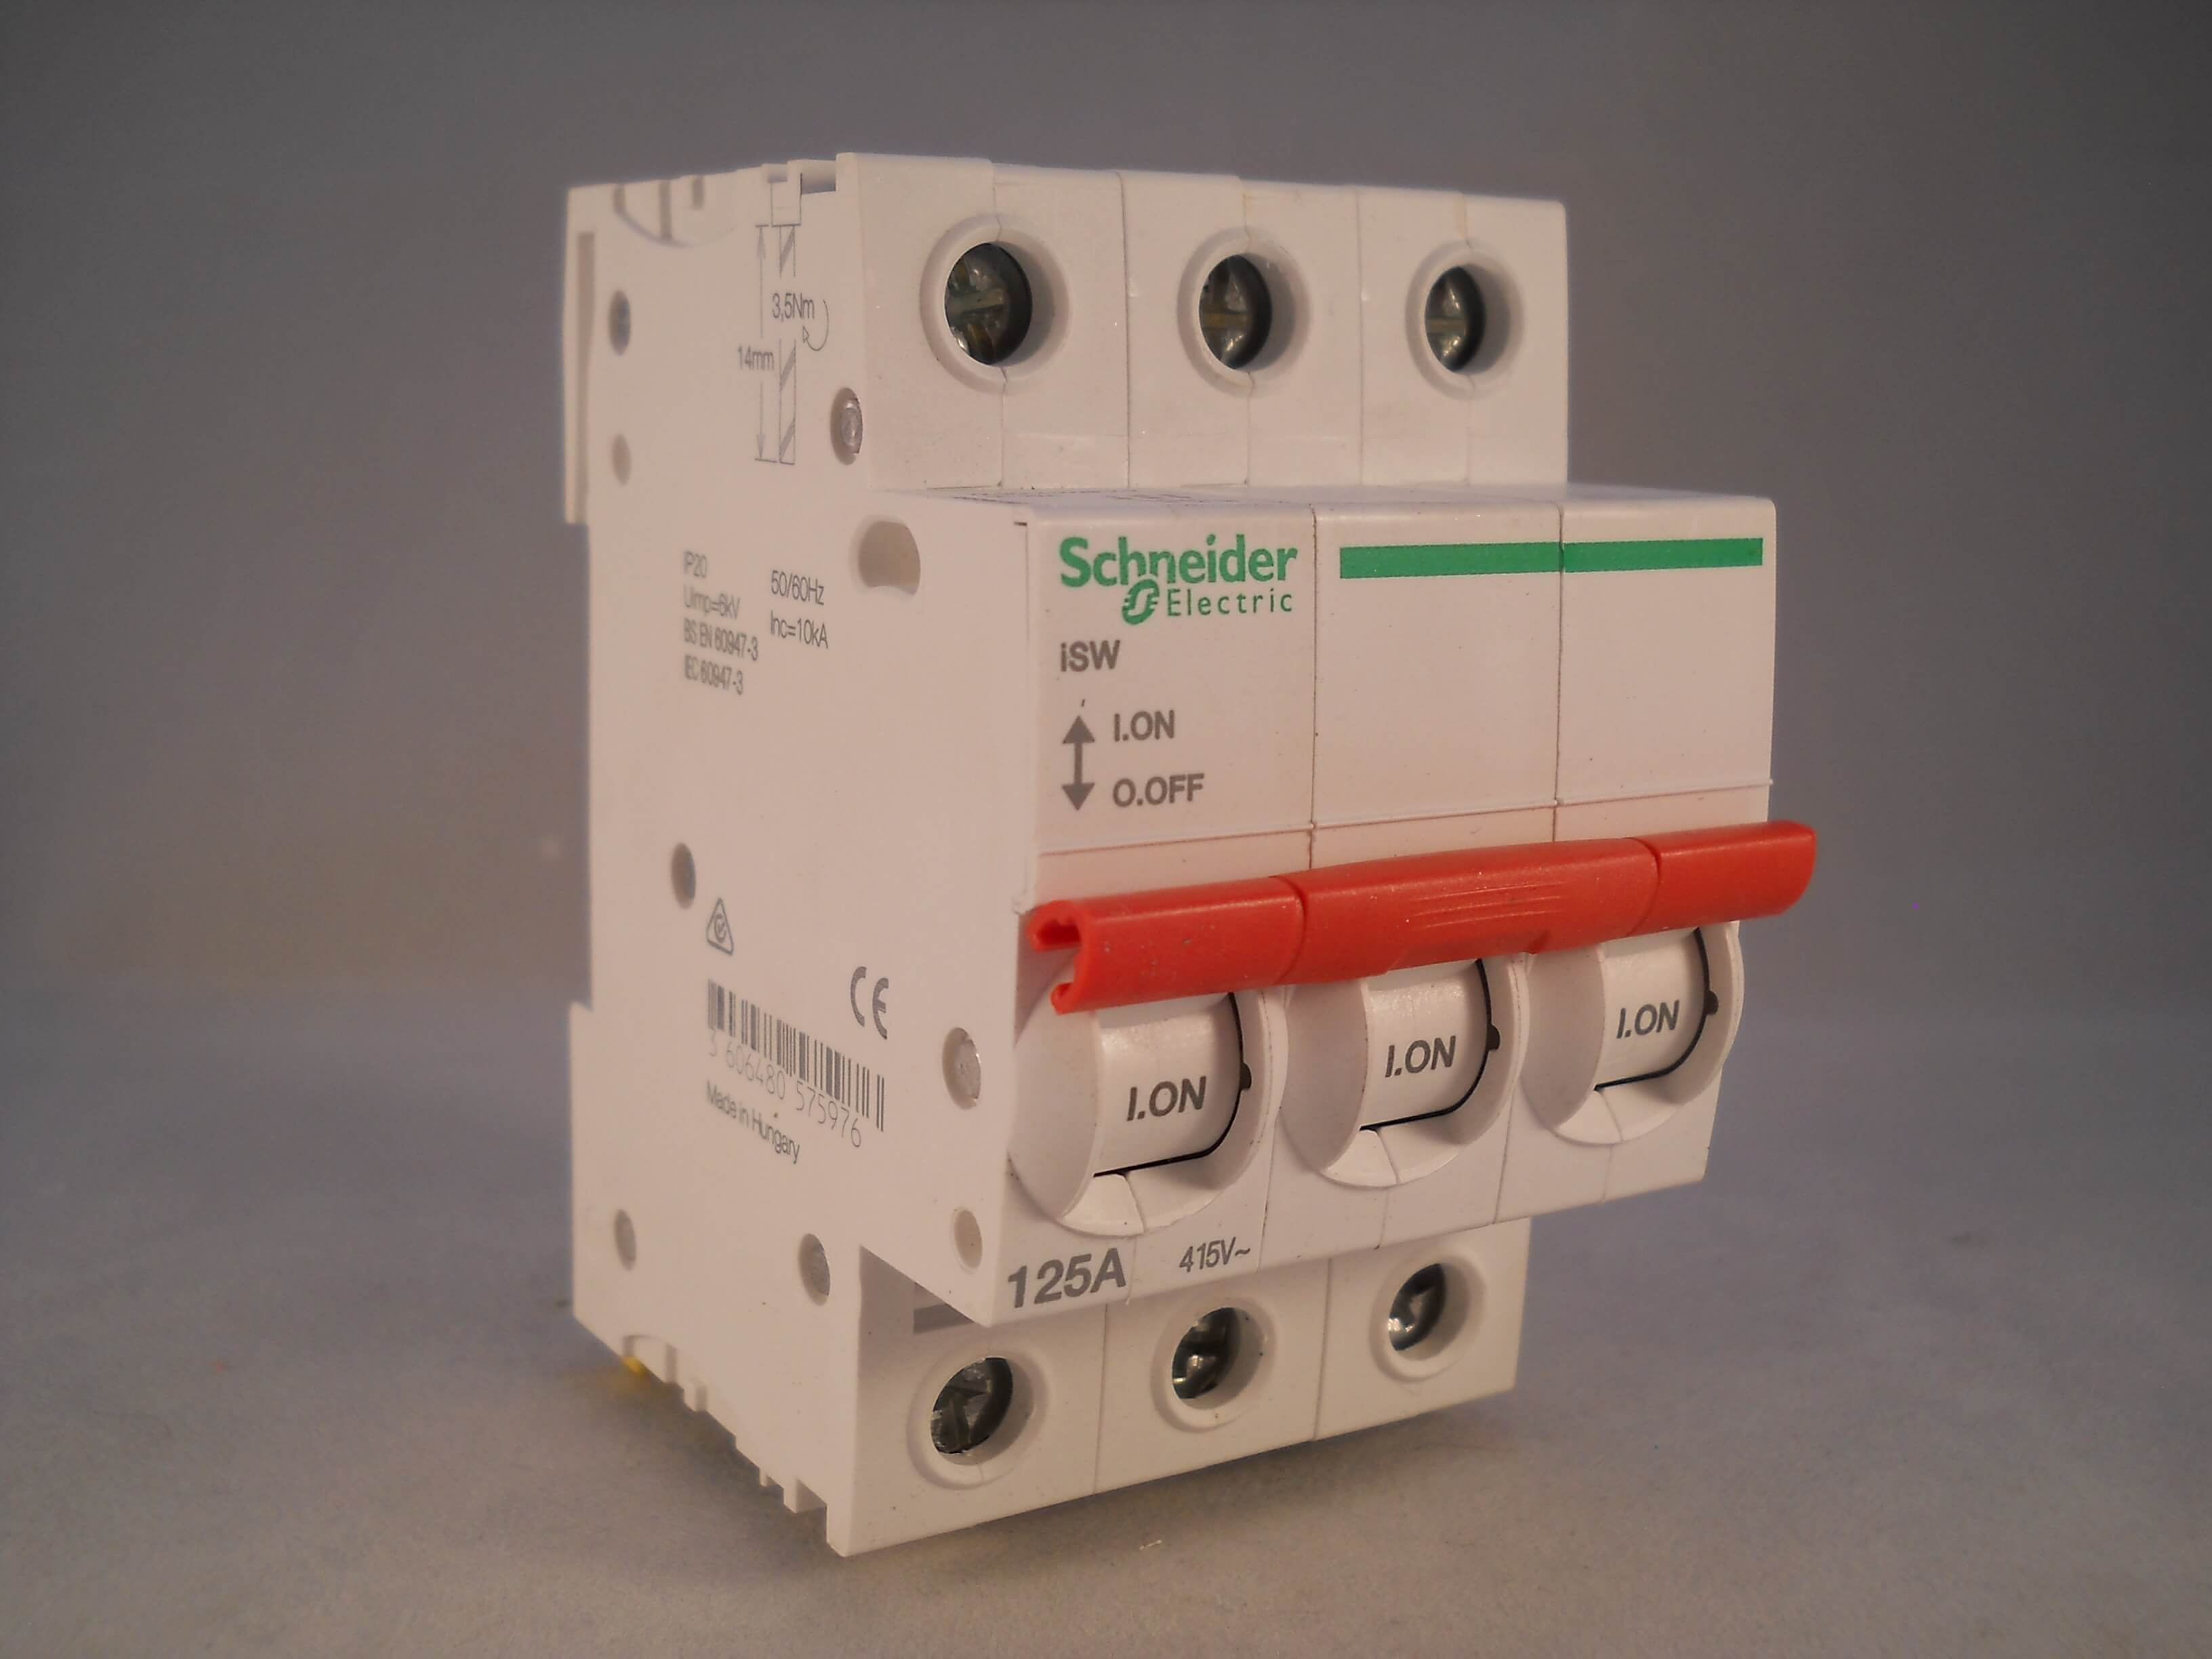 Schneider Main Switch 125 Amp Acti9 Isolator Triple Pole & N 125A SEA91253N NEW - Willrose Electrical - Discontinued & Obsolete Circuit Breakers